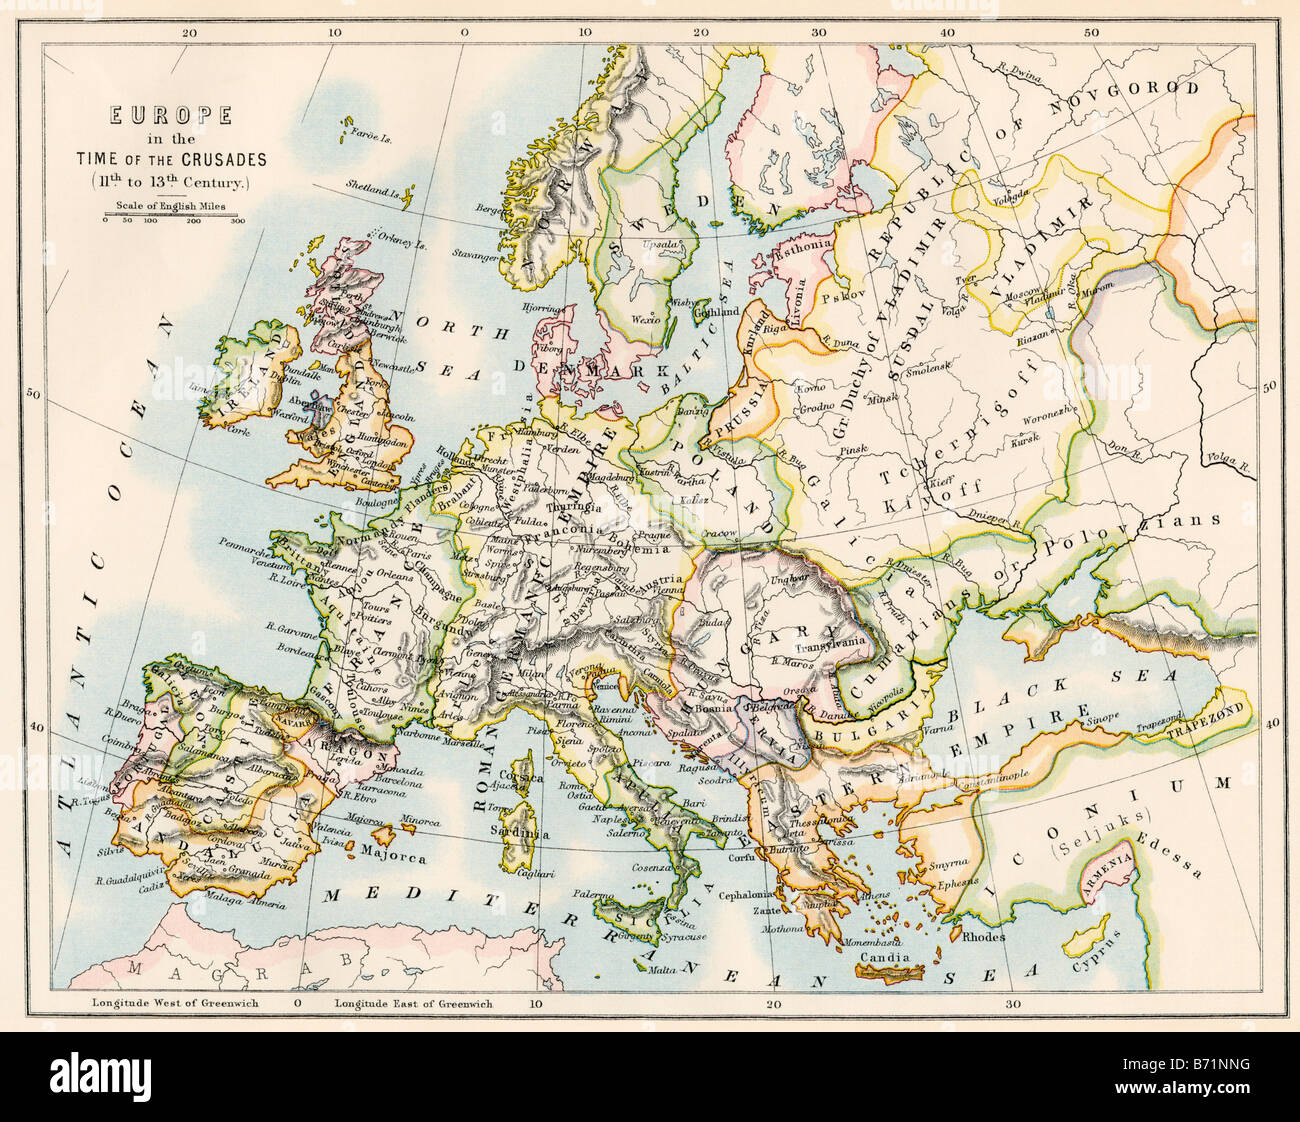 Map of Europe during the Crusades 1000 to 1200 AD Stock Photo     Map of Europe during the Crusades 1000 to 1200 AD